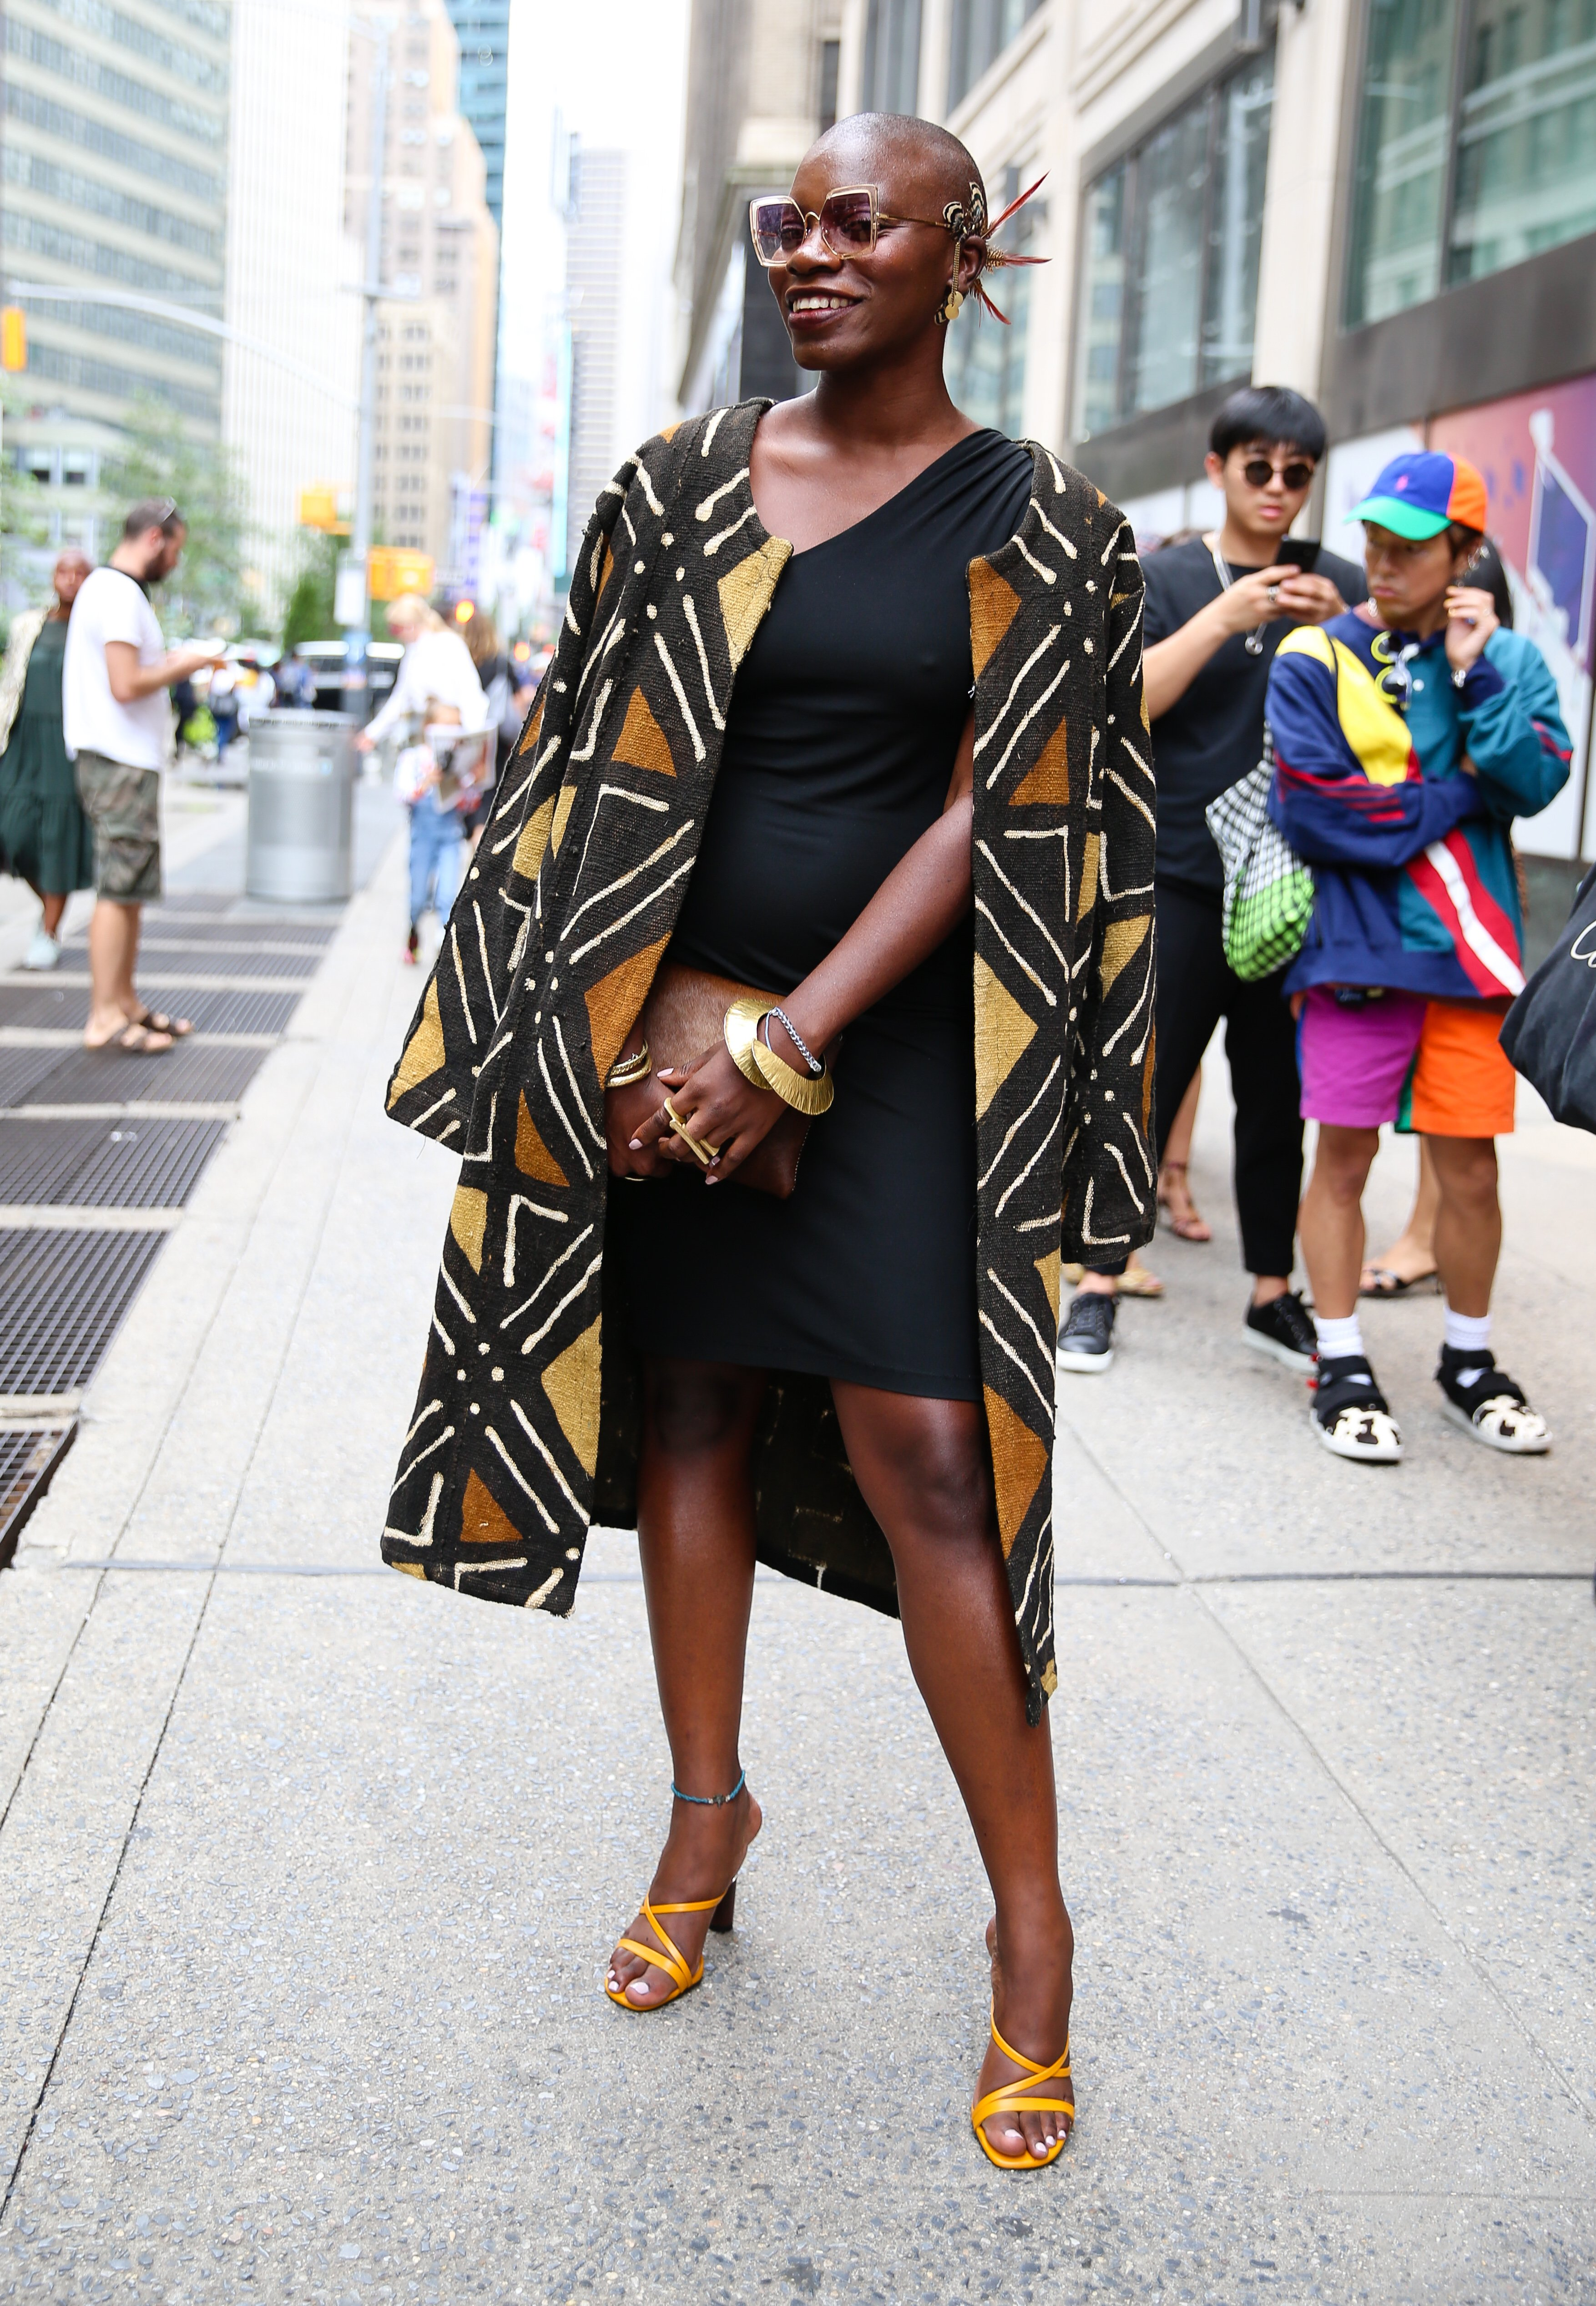 Jessica Nabongo during New York Fashion Week 2019. | Source: Getty Images